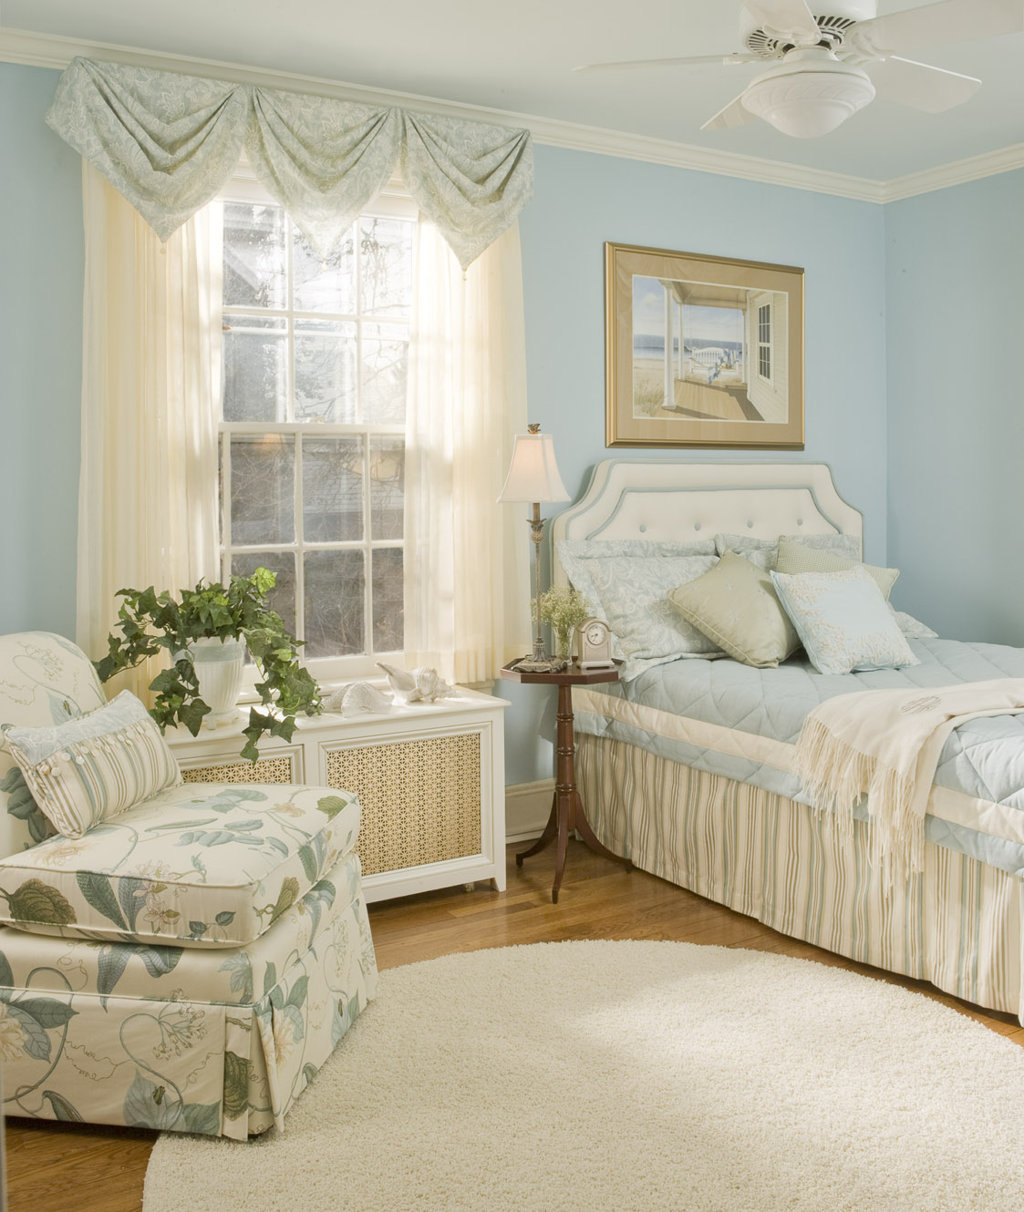 Soft Blue Arch Treatment For Boring Small Window Bedroom Macthed With Soft  Blue Walls And Blue